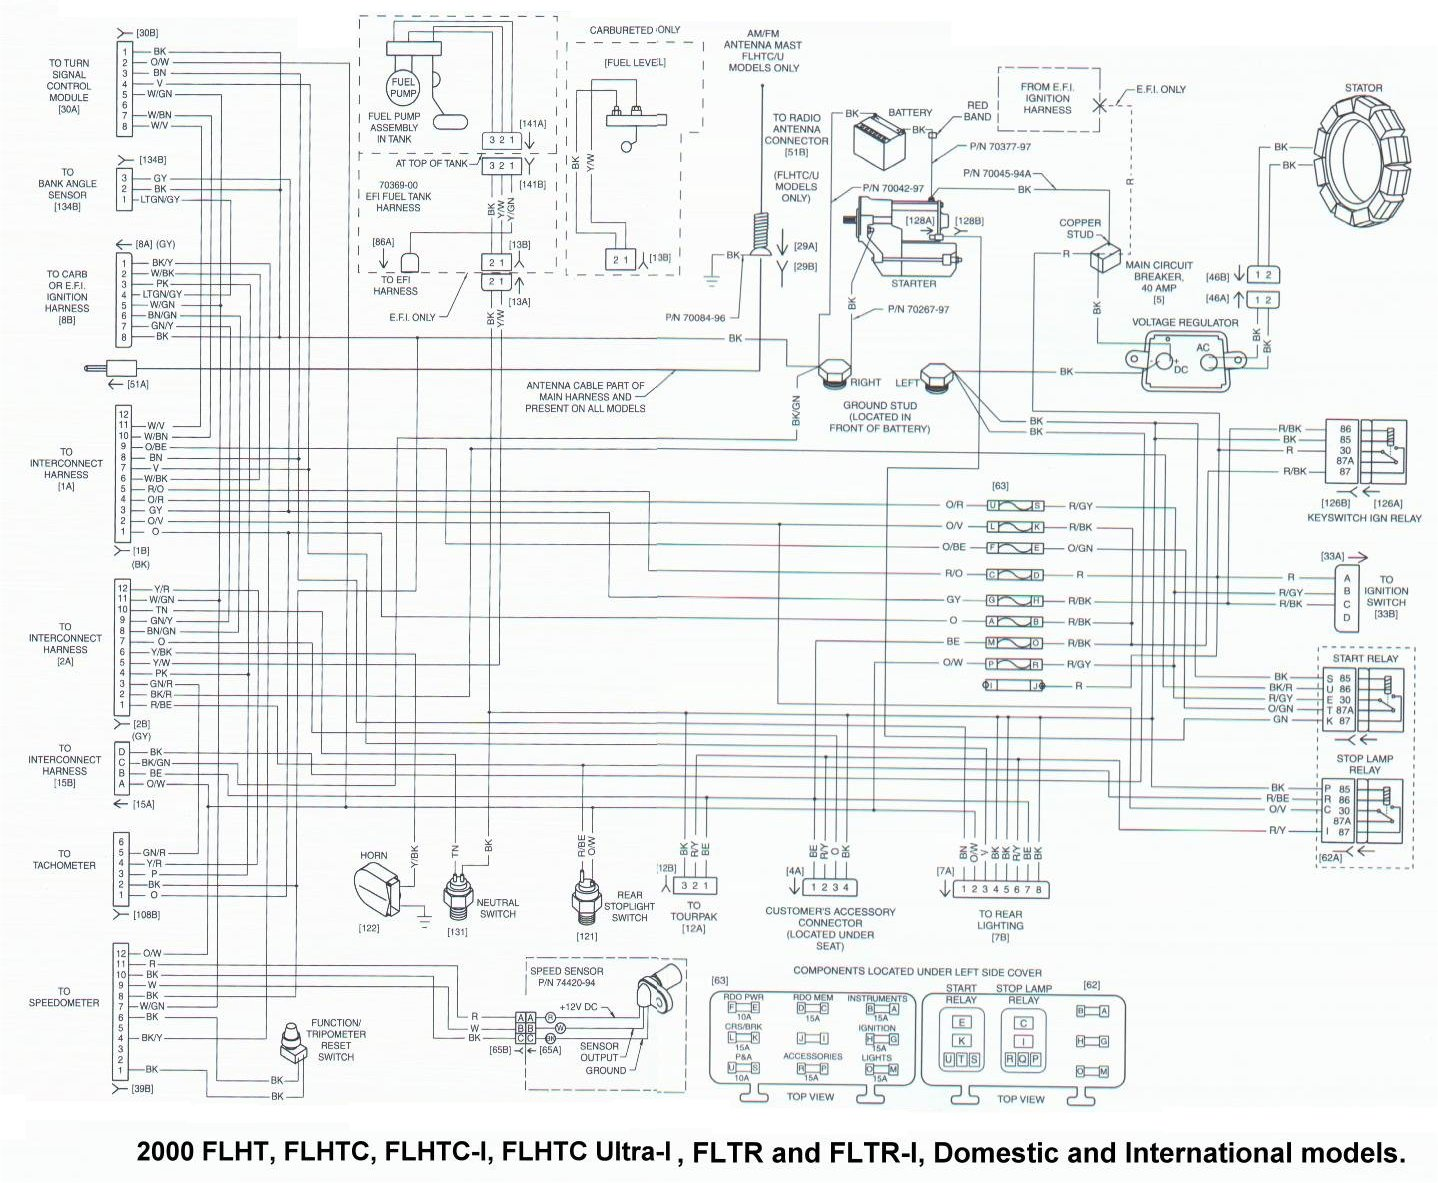 2000 hd wiring diagram 6 tai do de \u2022fxwg wiring diagram wiring schematic diagram rh 147 twizer co 2011 road king wiring diagram